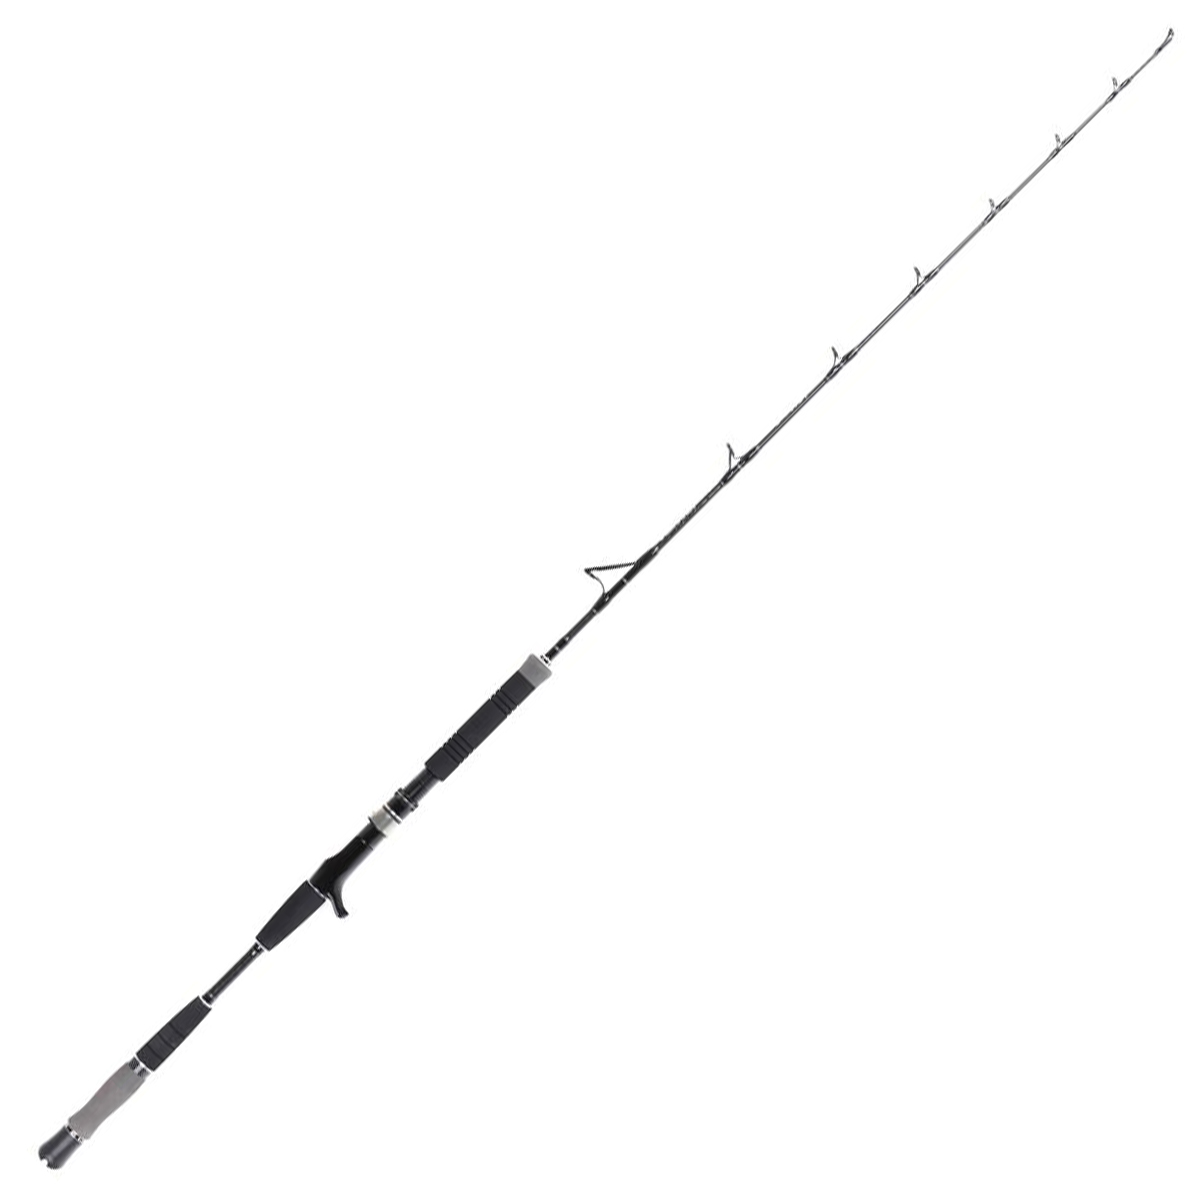 Prey Jig Stick 5,9'' Jig weight up to 300 g